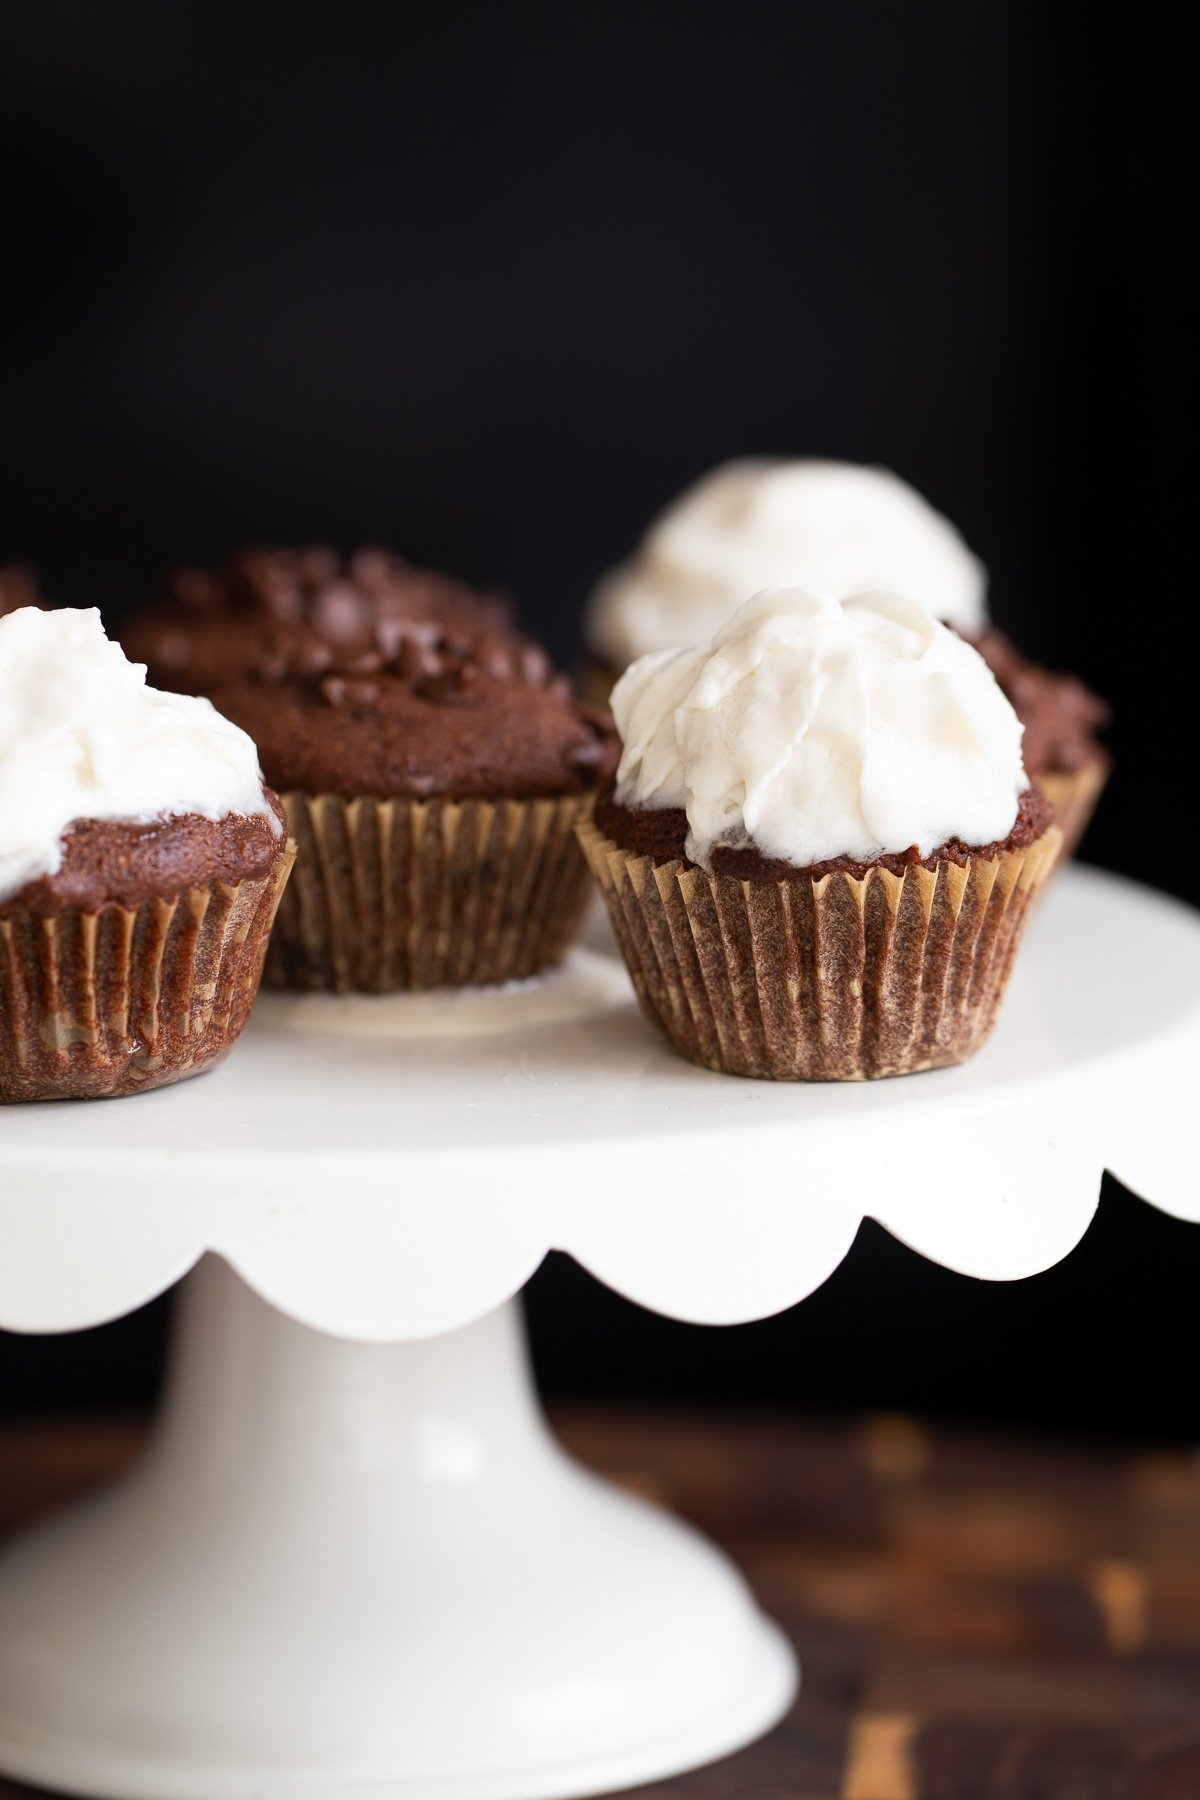 glutenfree vegan chocolate cupcakes on a cupcake stand